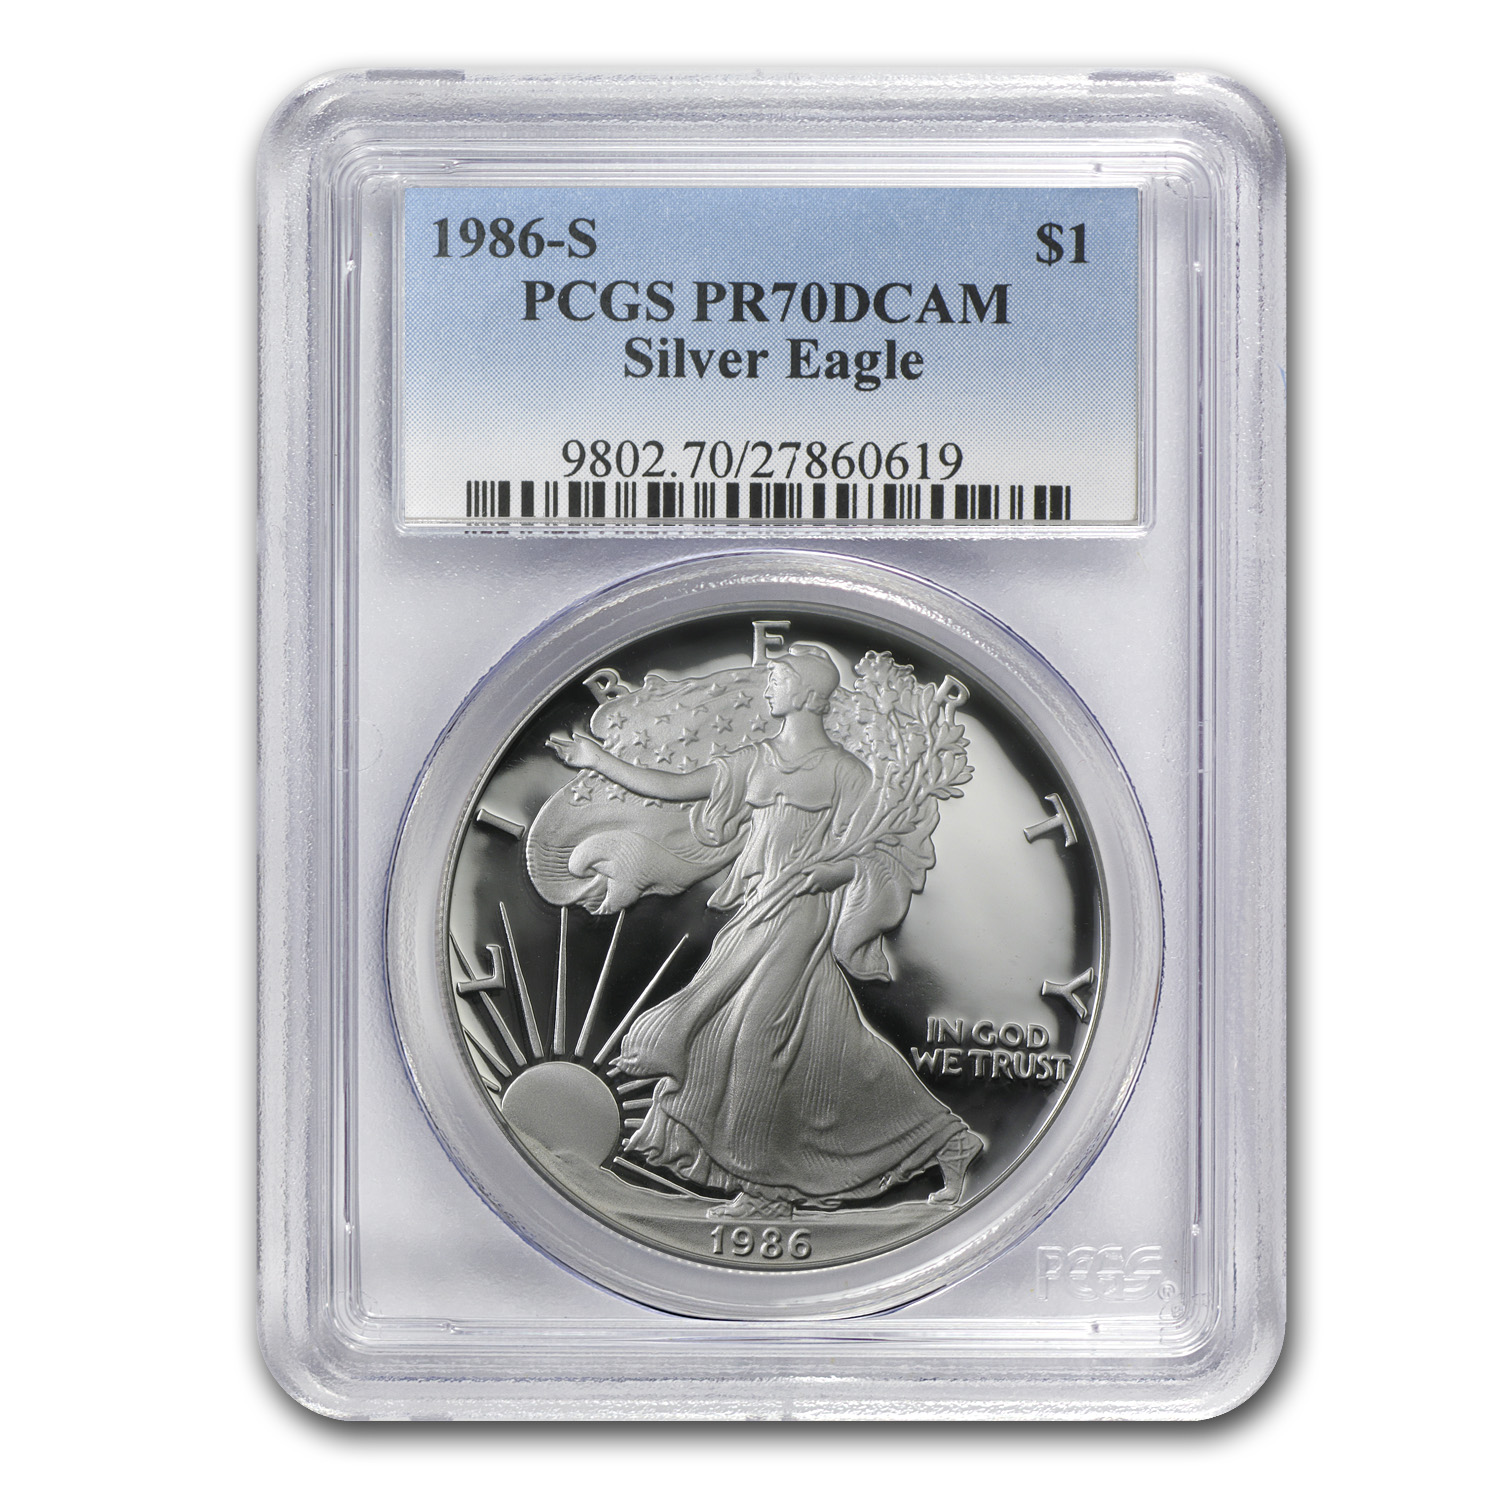 1986-2014 28-Coin Proof Silver American Eagle Set PR-70 PCGS